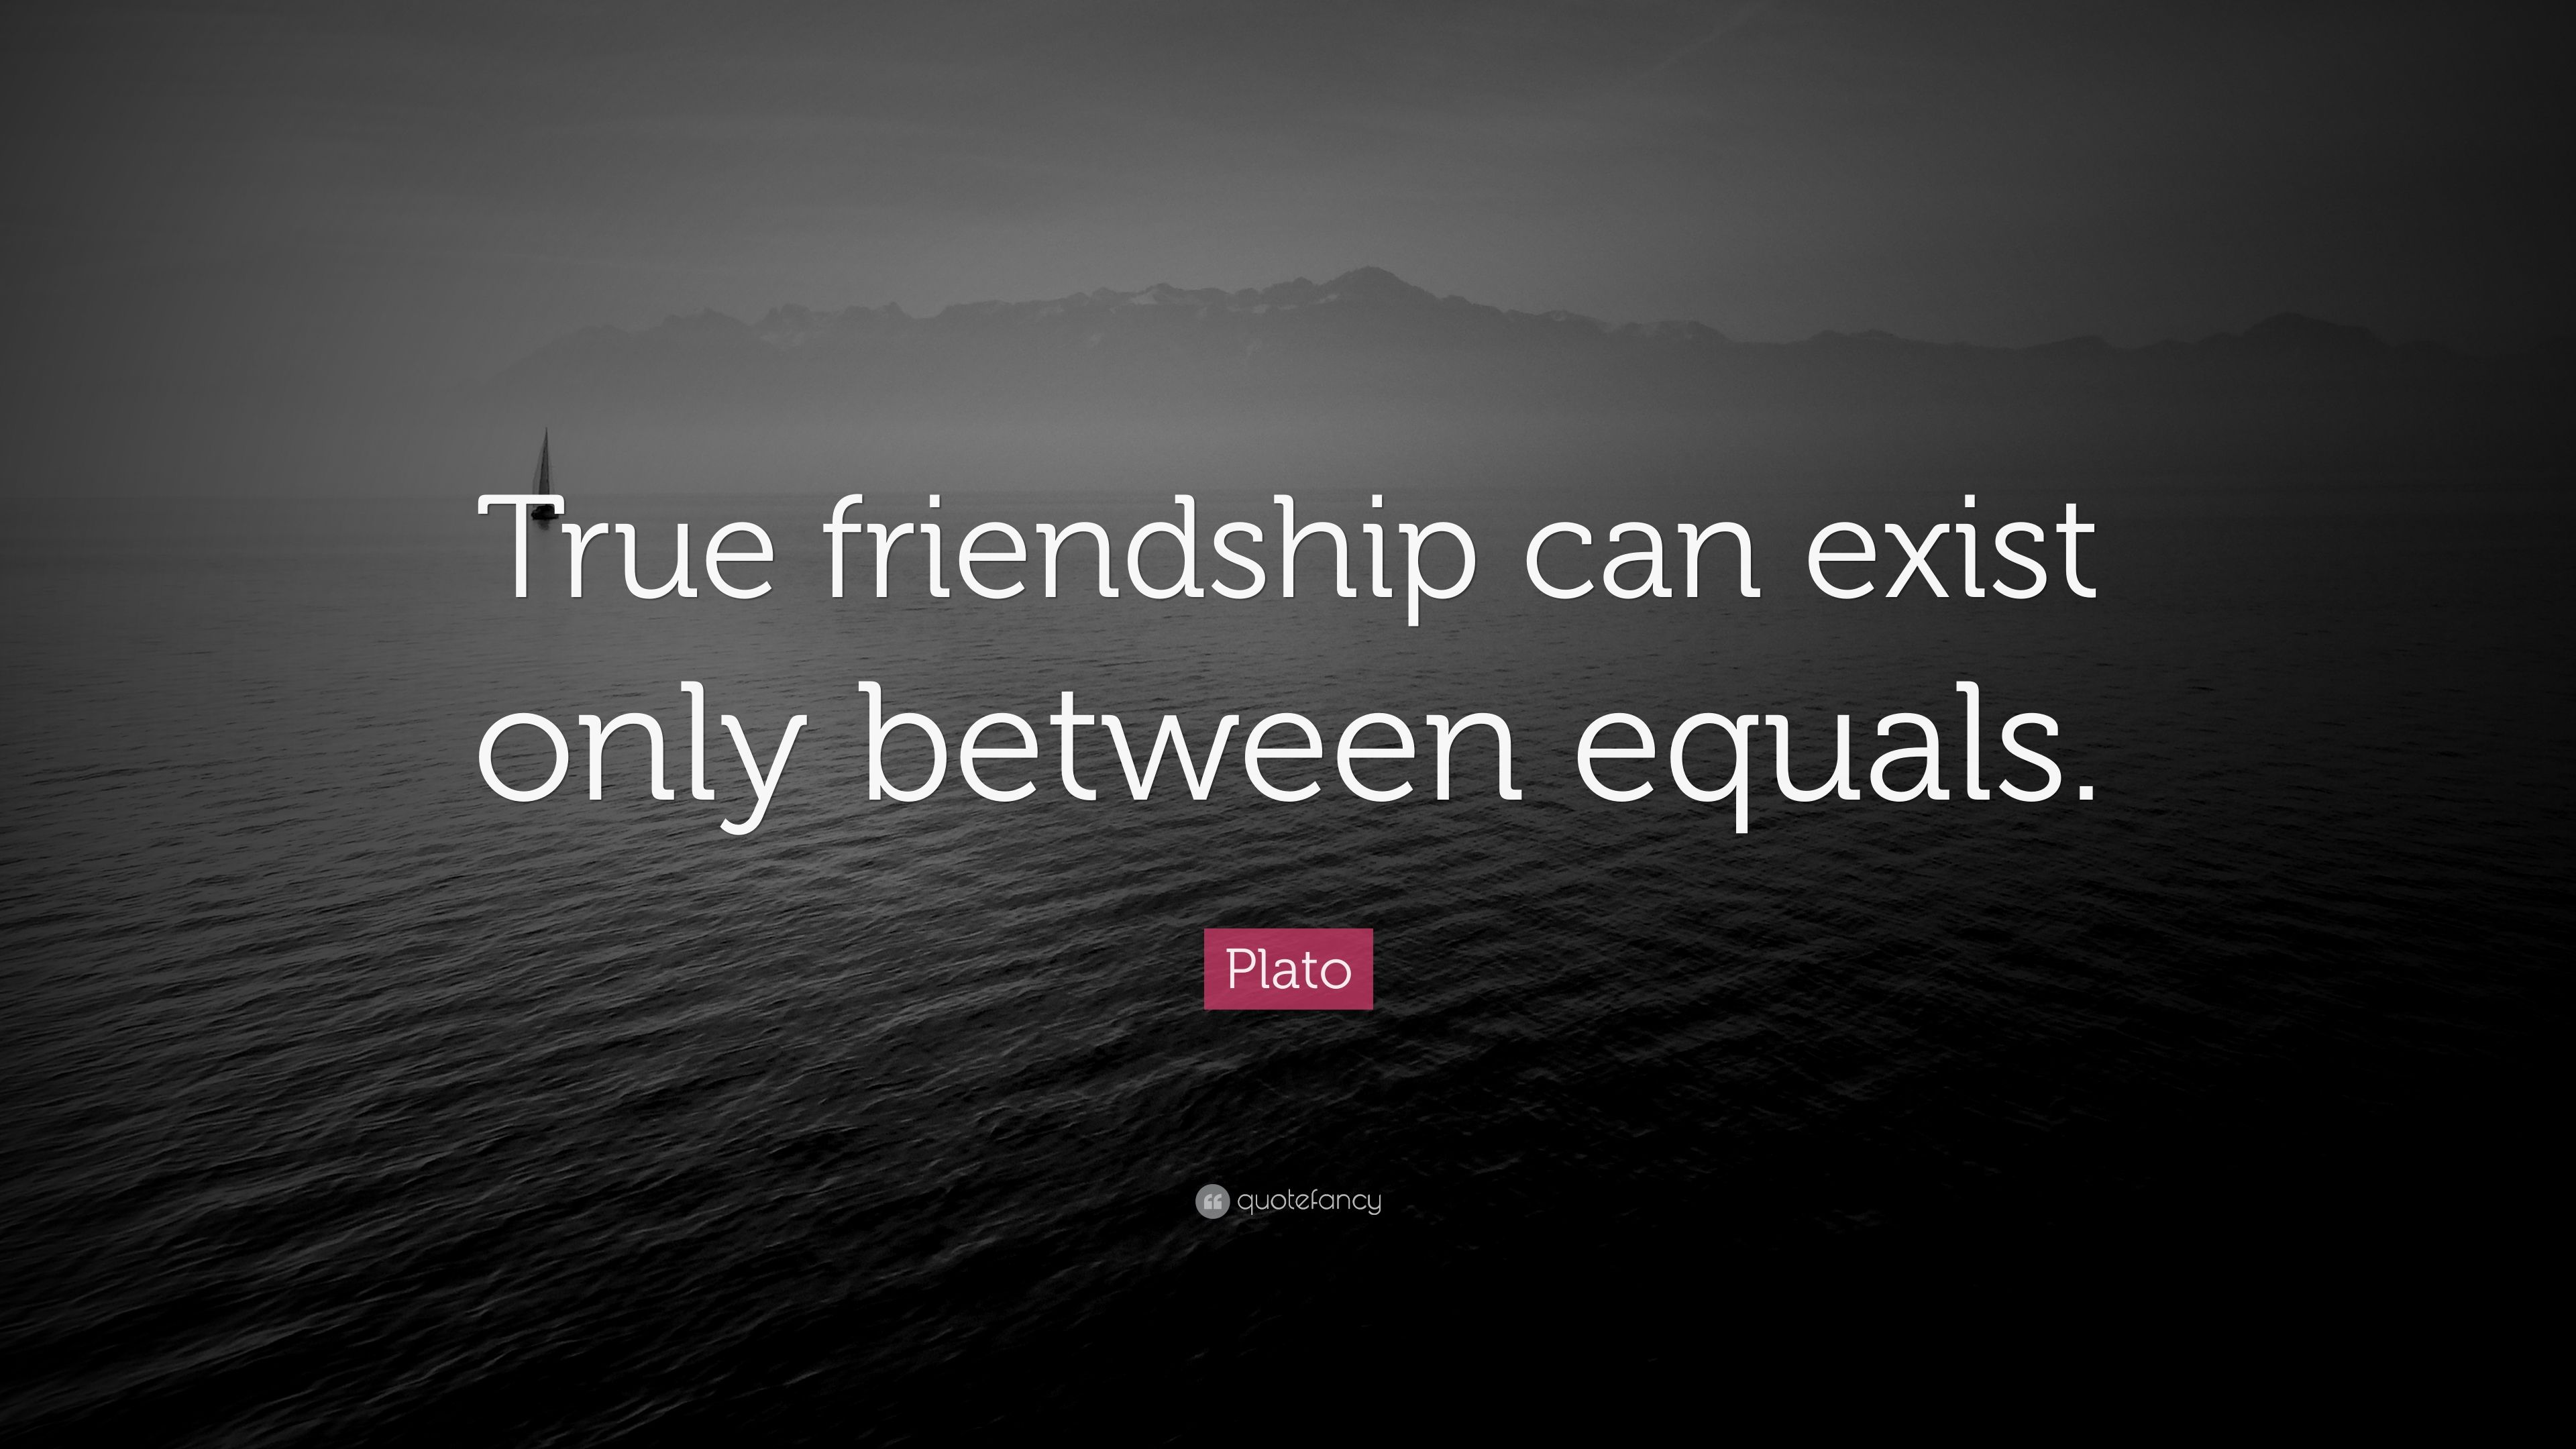 Plato Quote: True friendship can exist only between